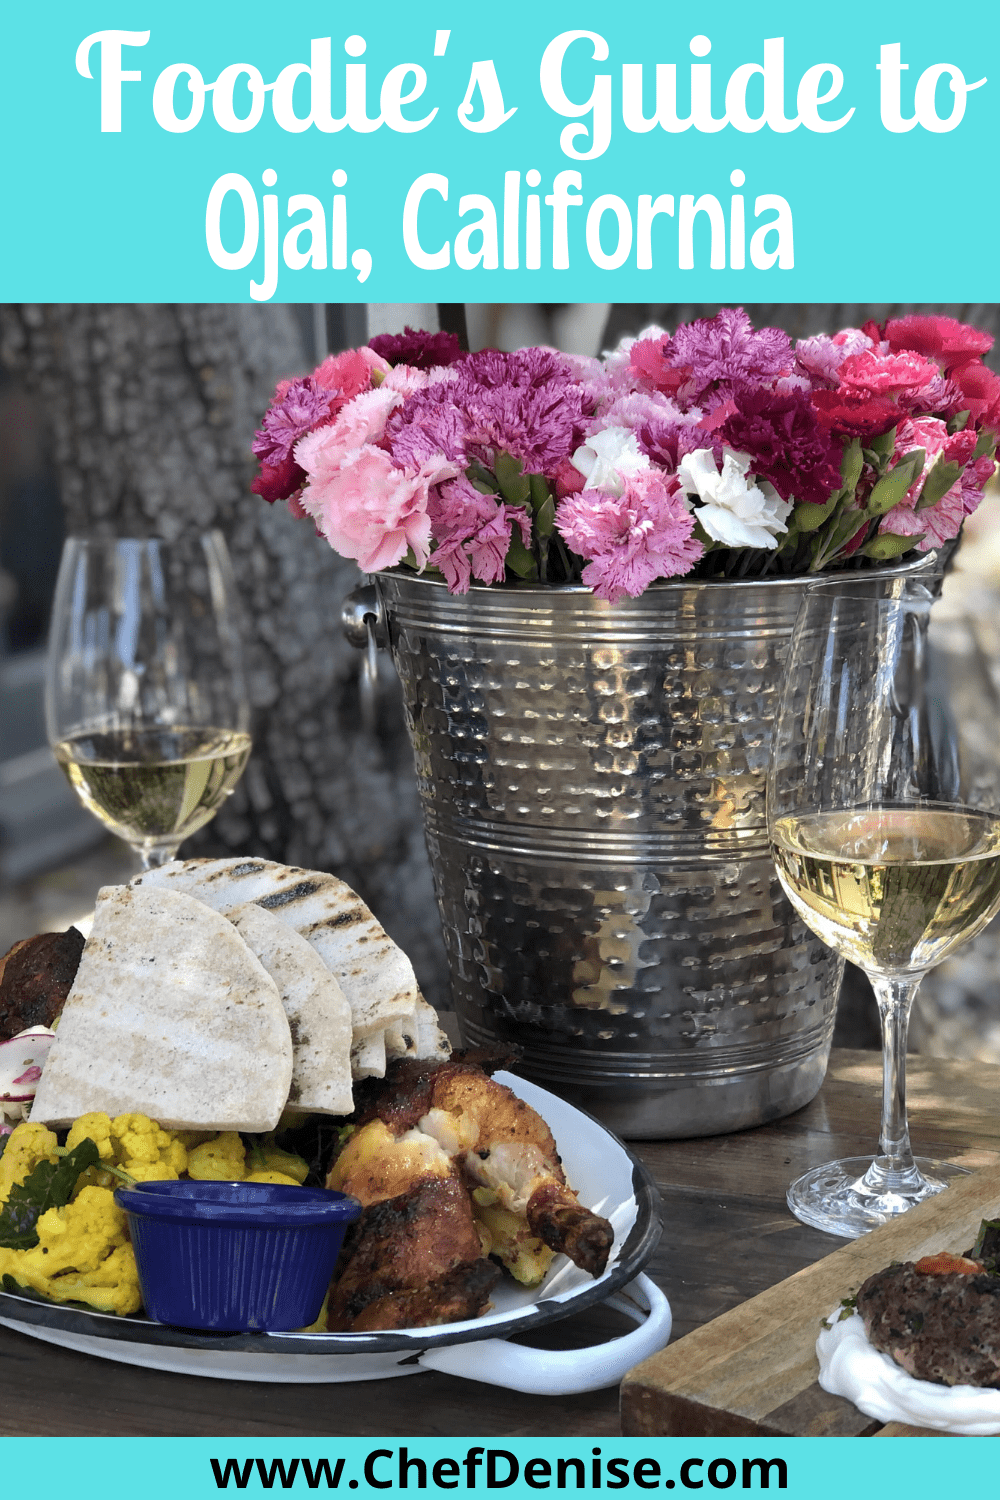 Pin for foodie's guide to Ojai, California